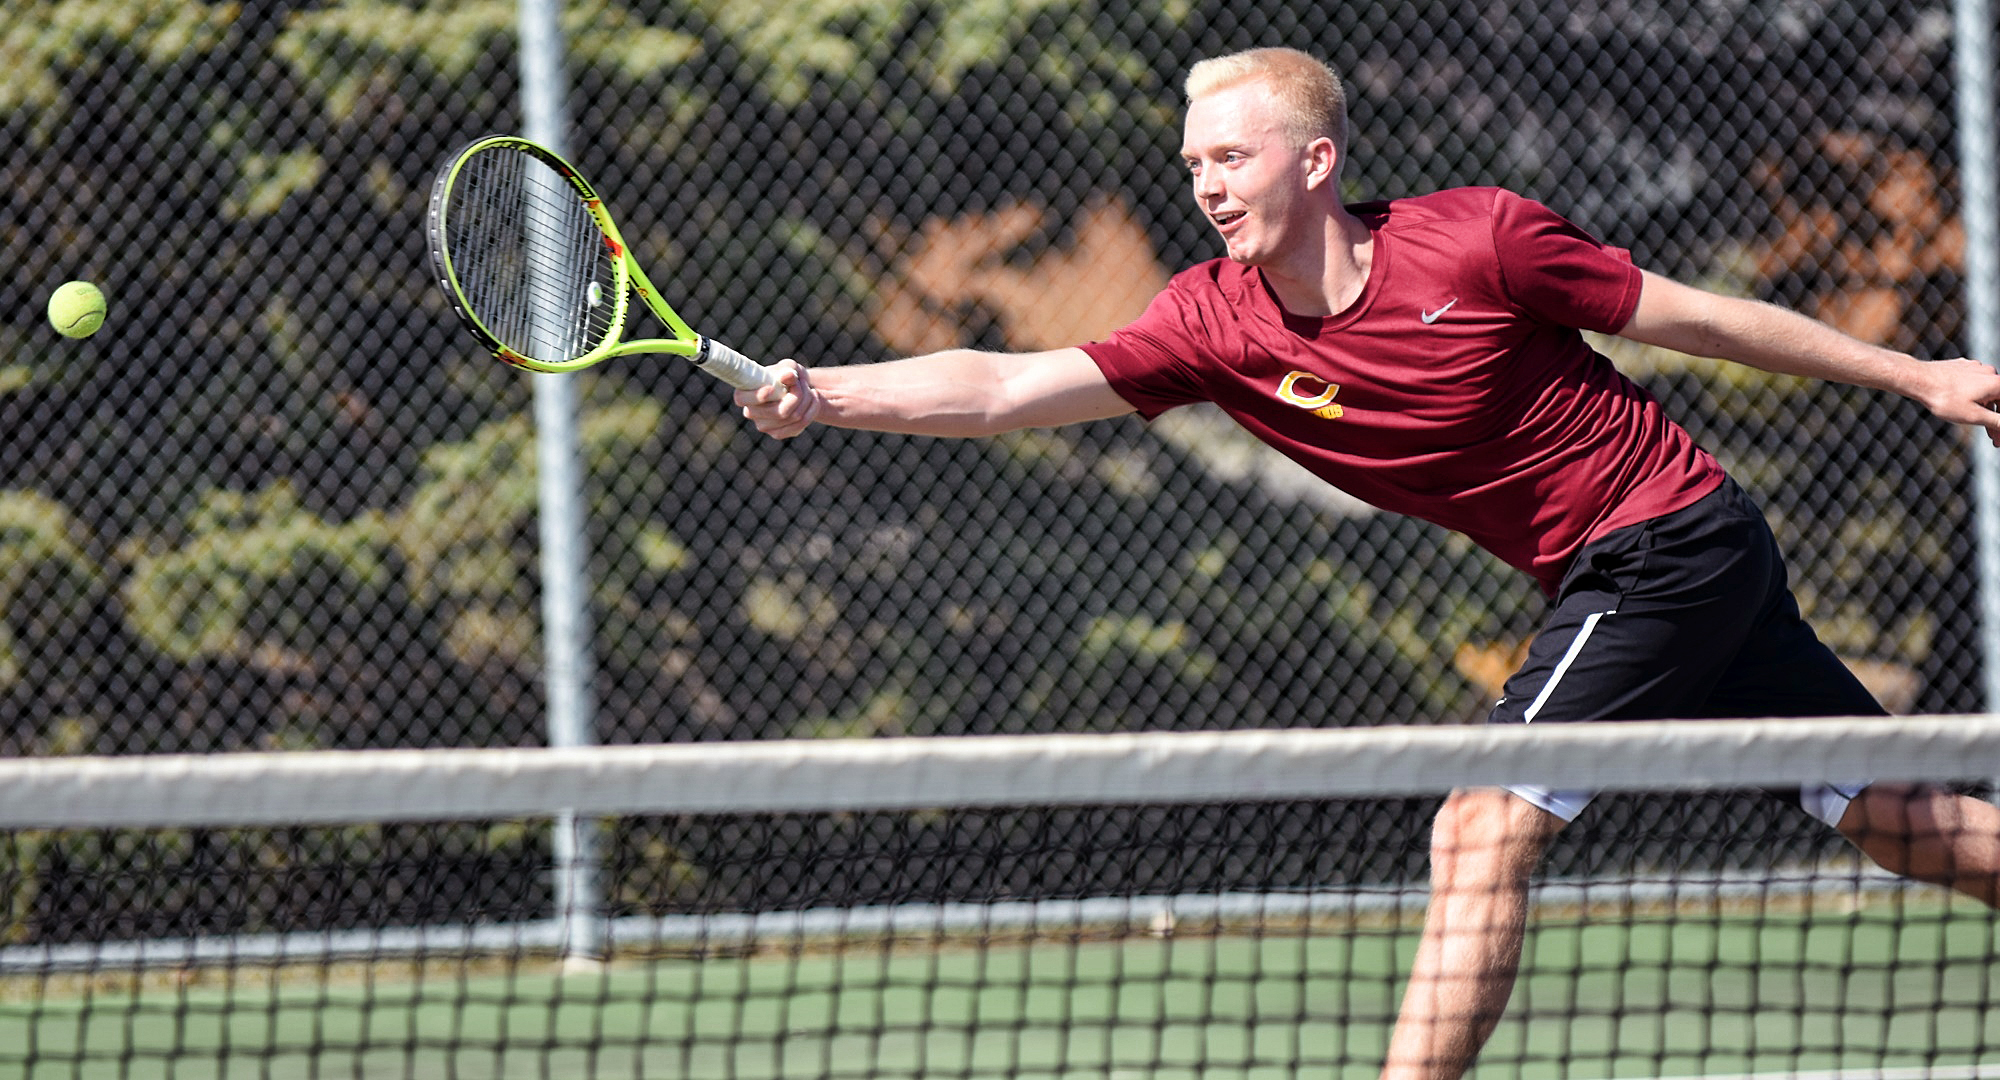 Junior Jared Saue earned two of the Cobbers' three wins on opening weekend. He won his singles match on Saturday and then claimed a doubles win with Erik Porter on Sunday.